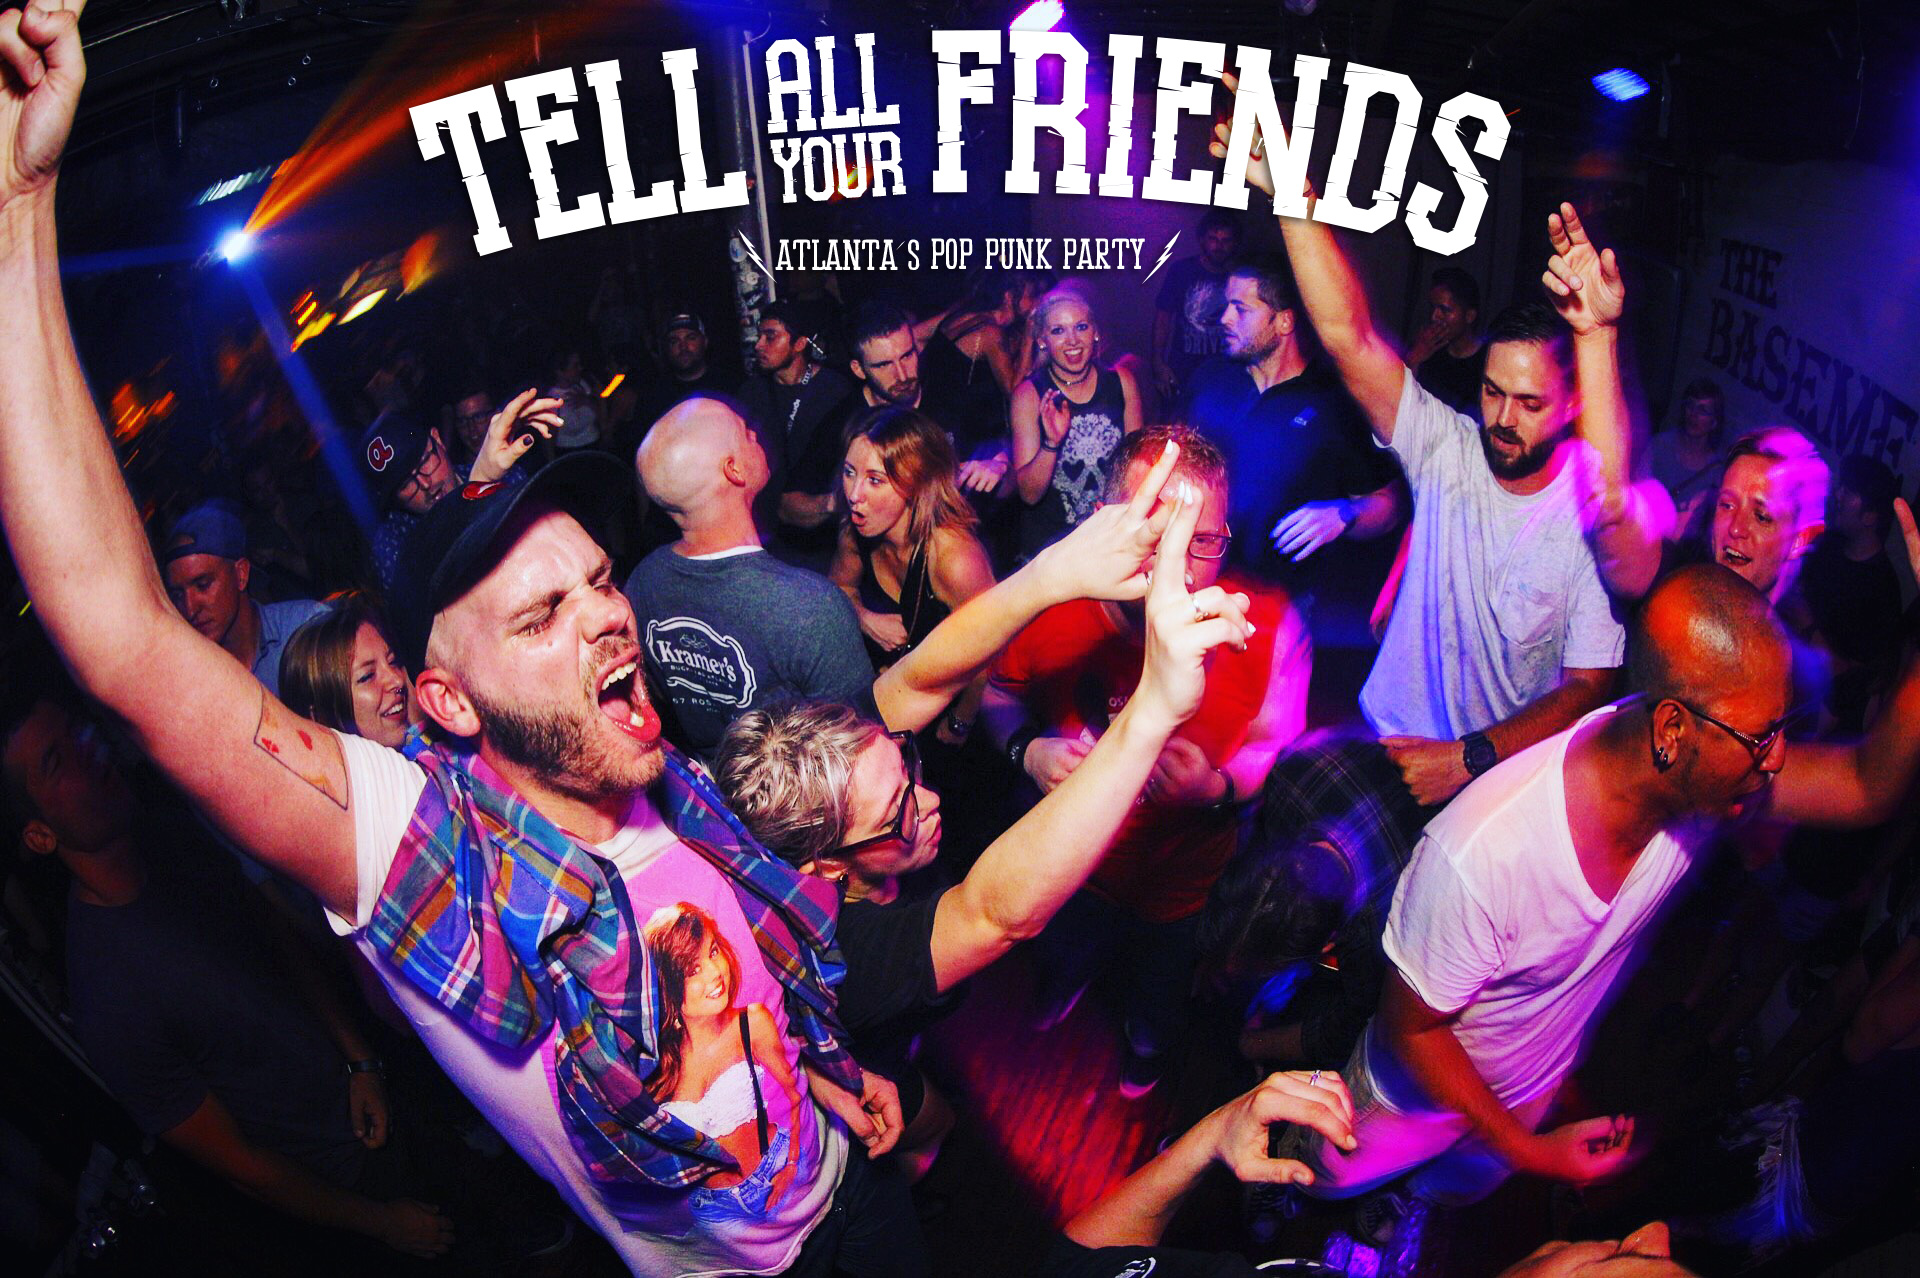 Tell All Your Friends - Atlanta's Pop Punk/Emo Party